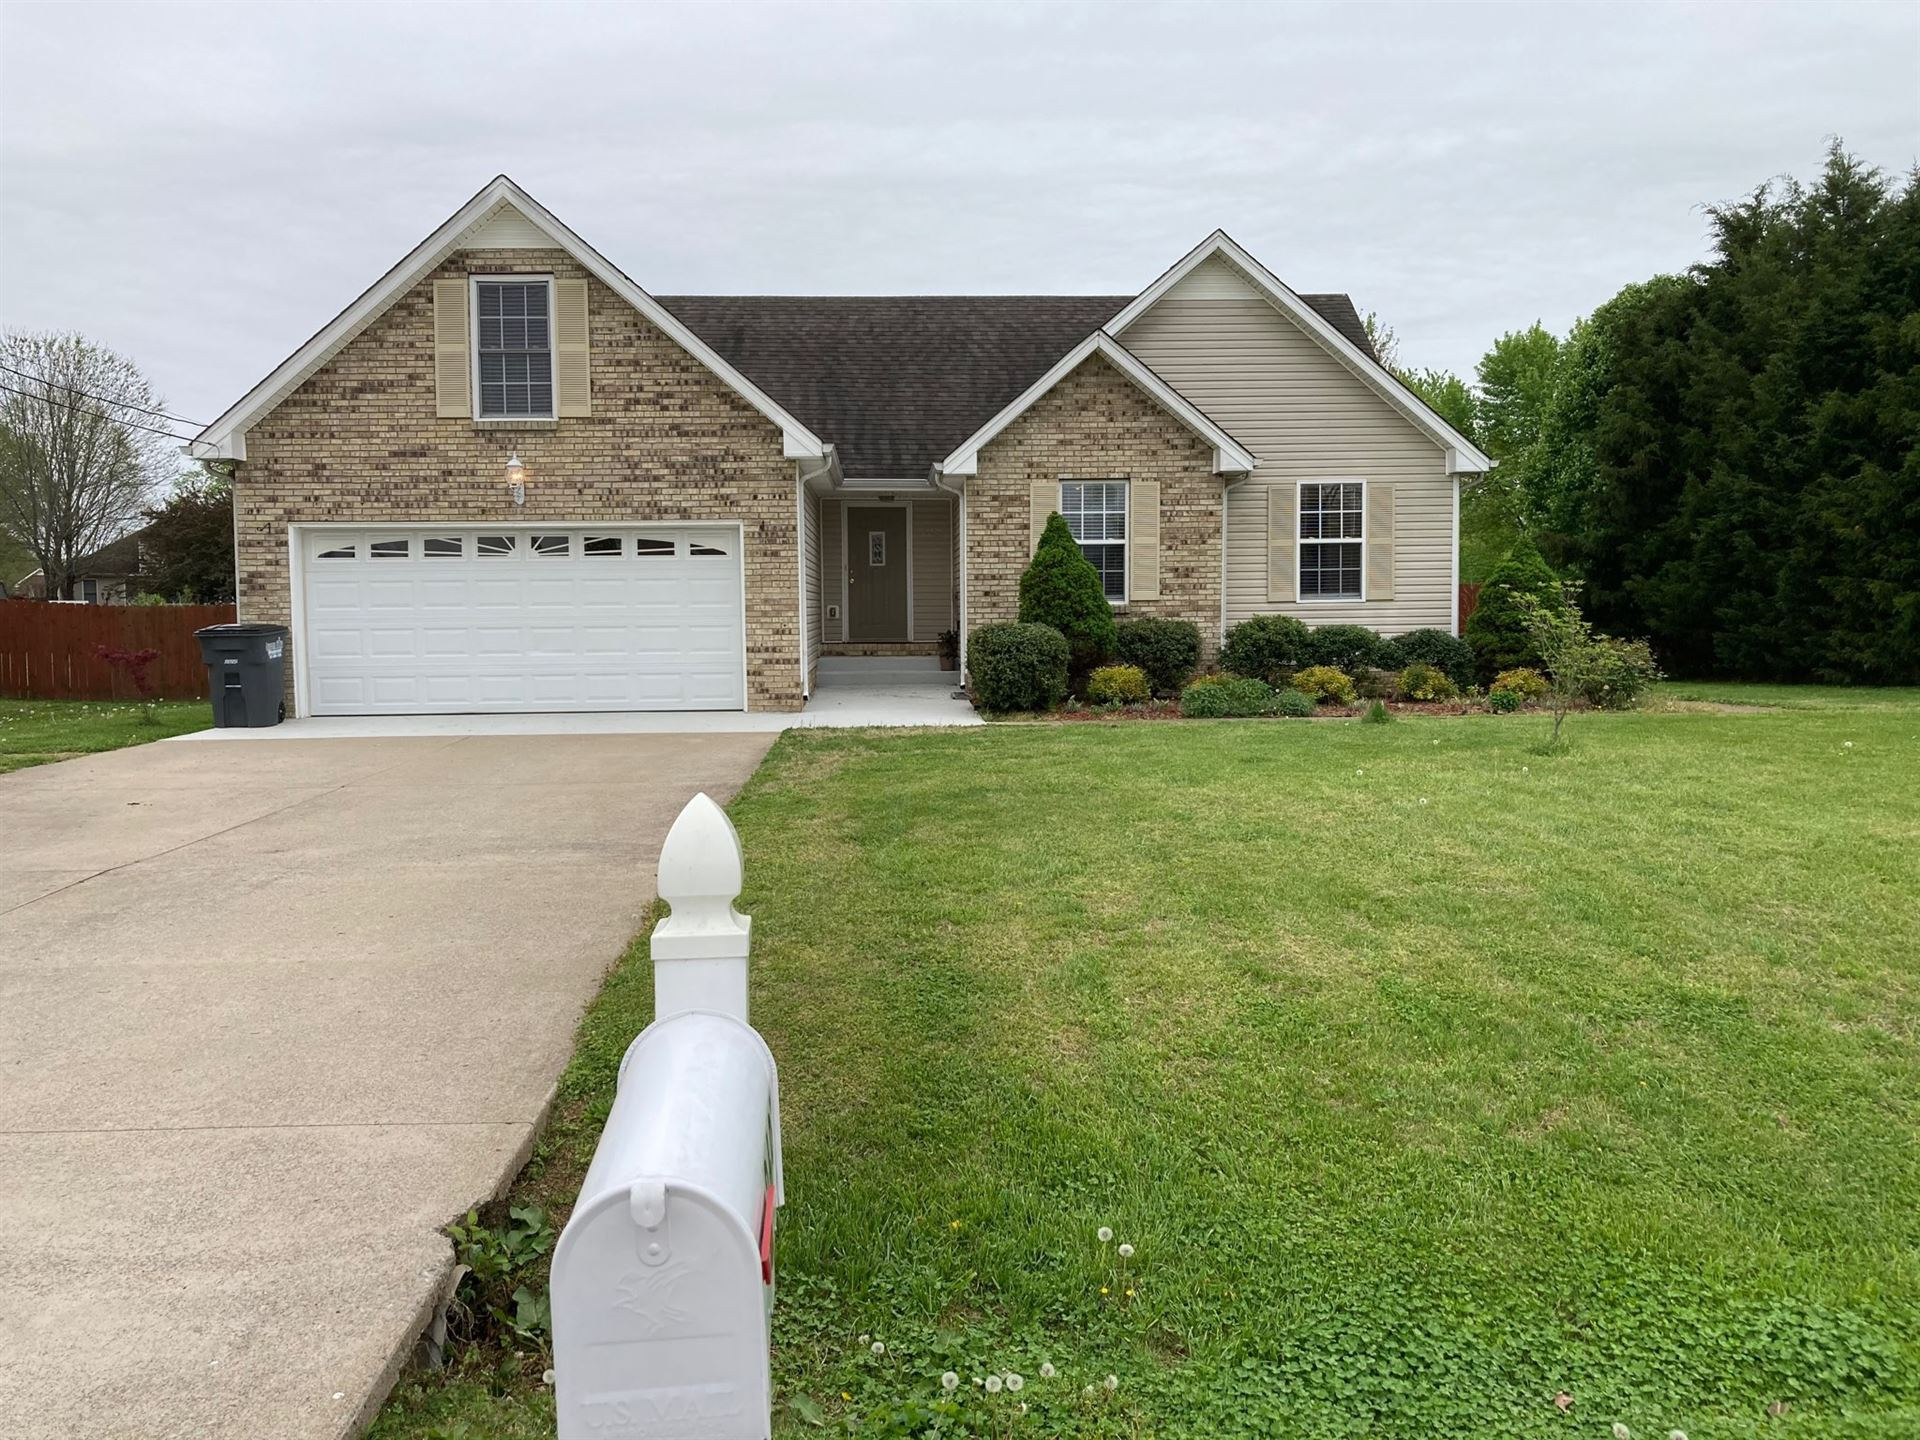 3697 Churchplace Ave, Clarksville, TN 37040 - MLS#: 2244642